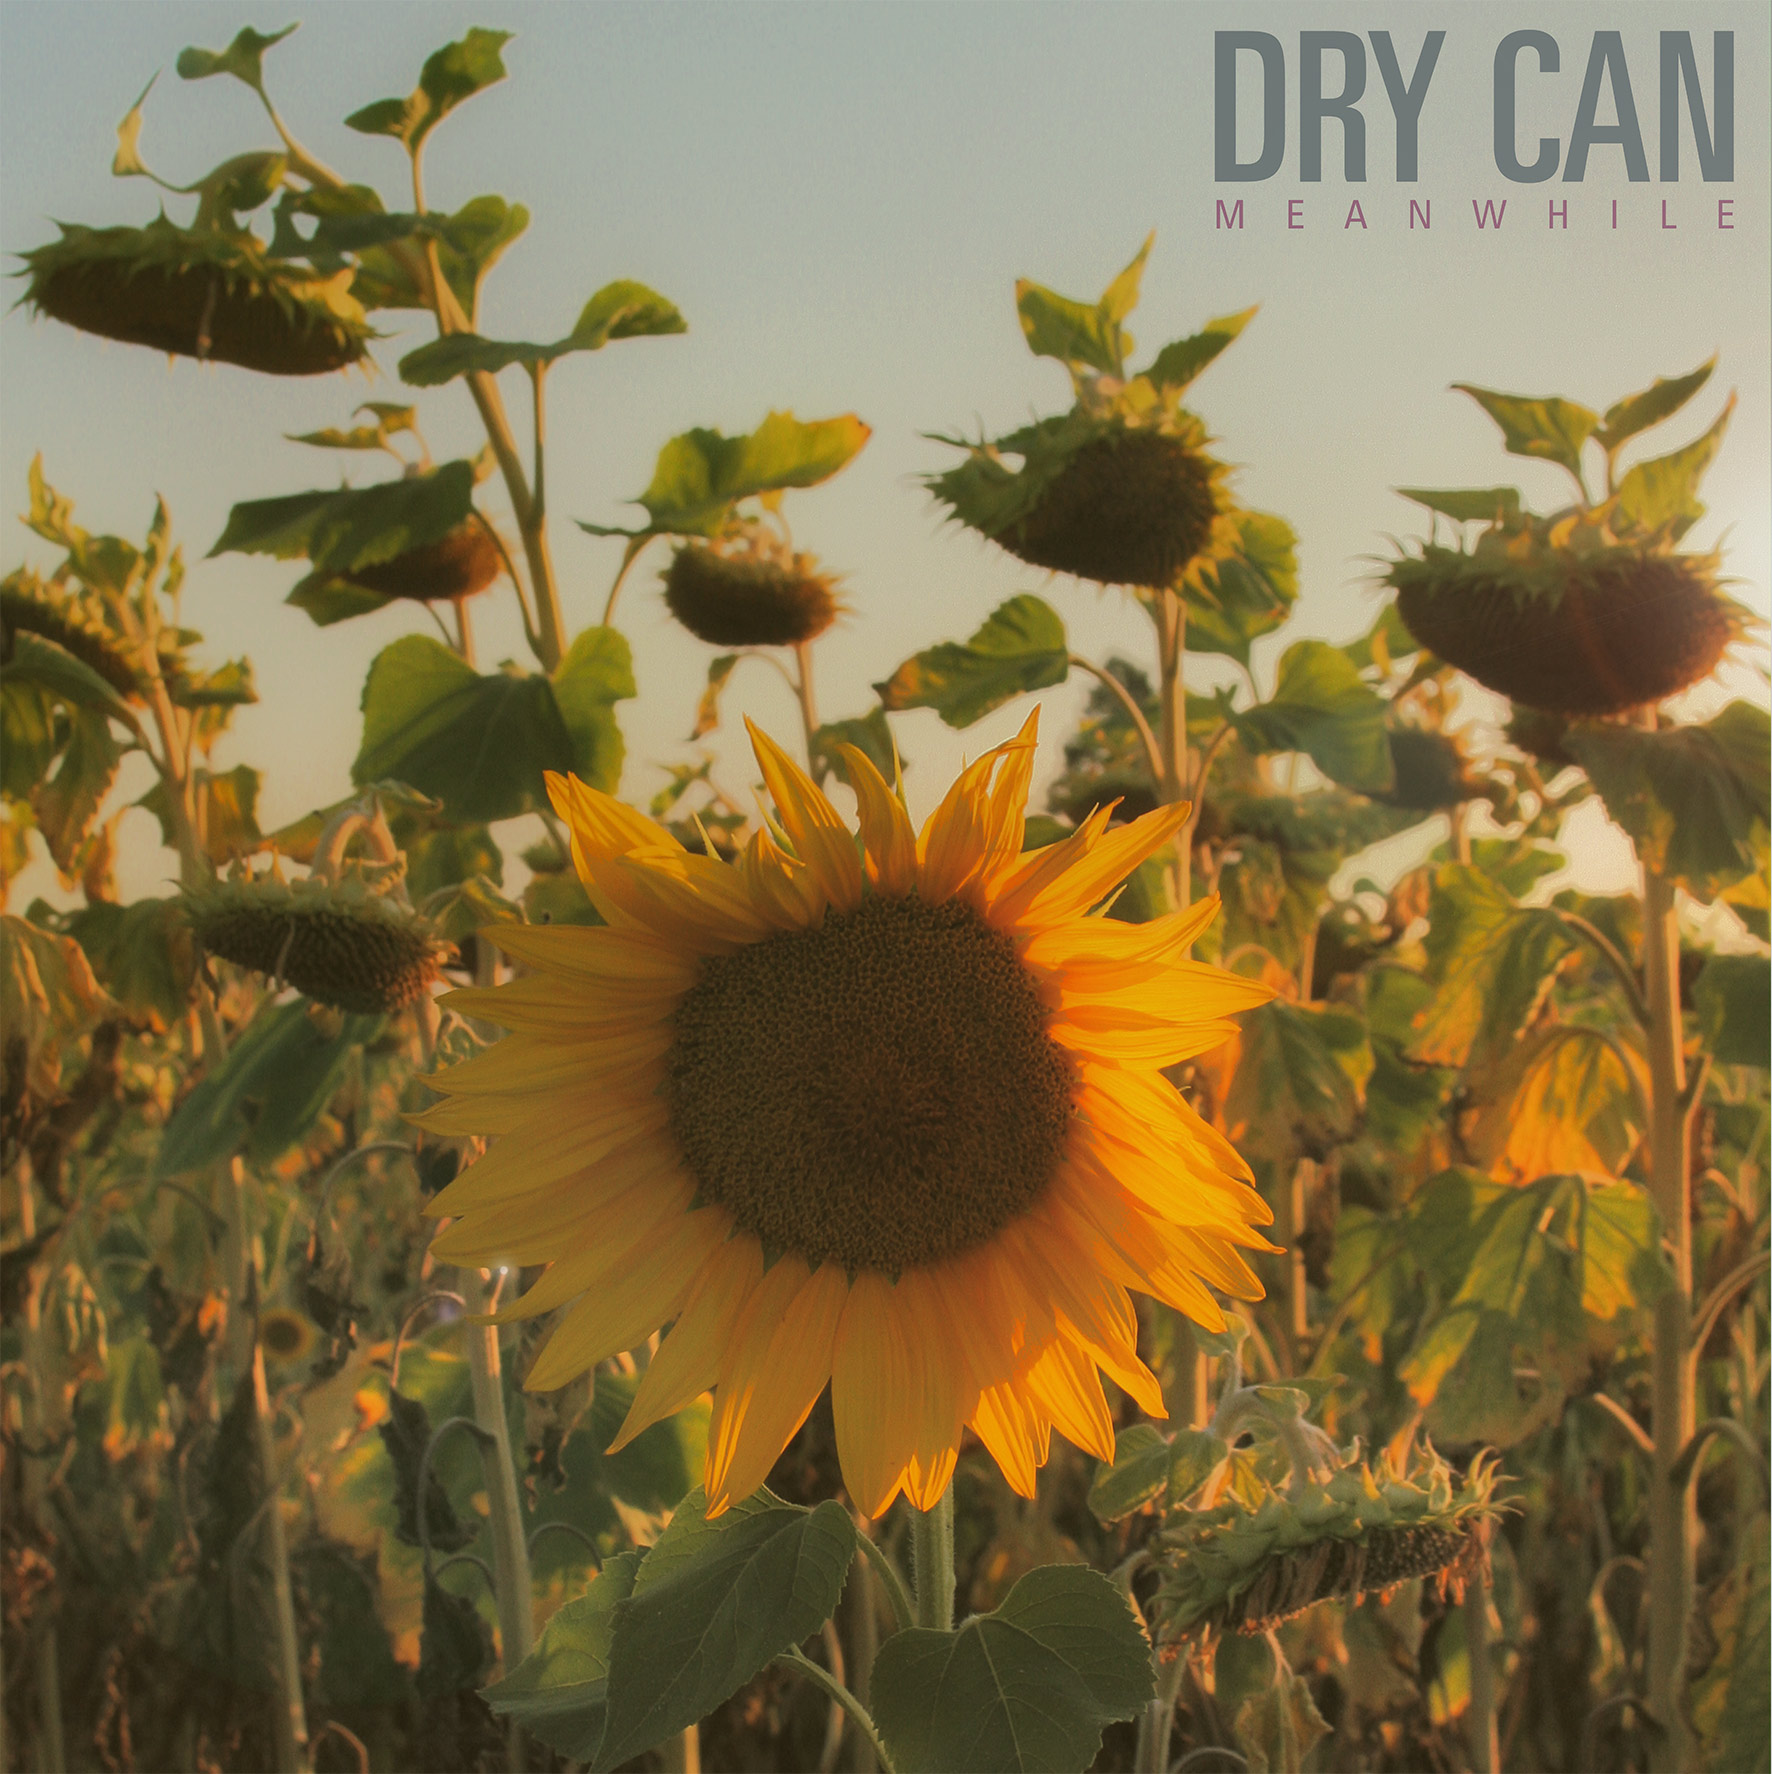 dry can, meanwhile, path, aside, wild, grunge, anne, antoine